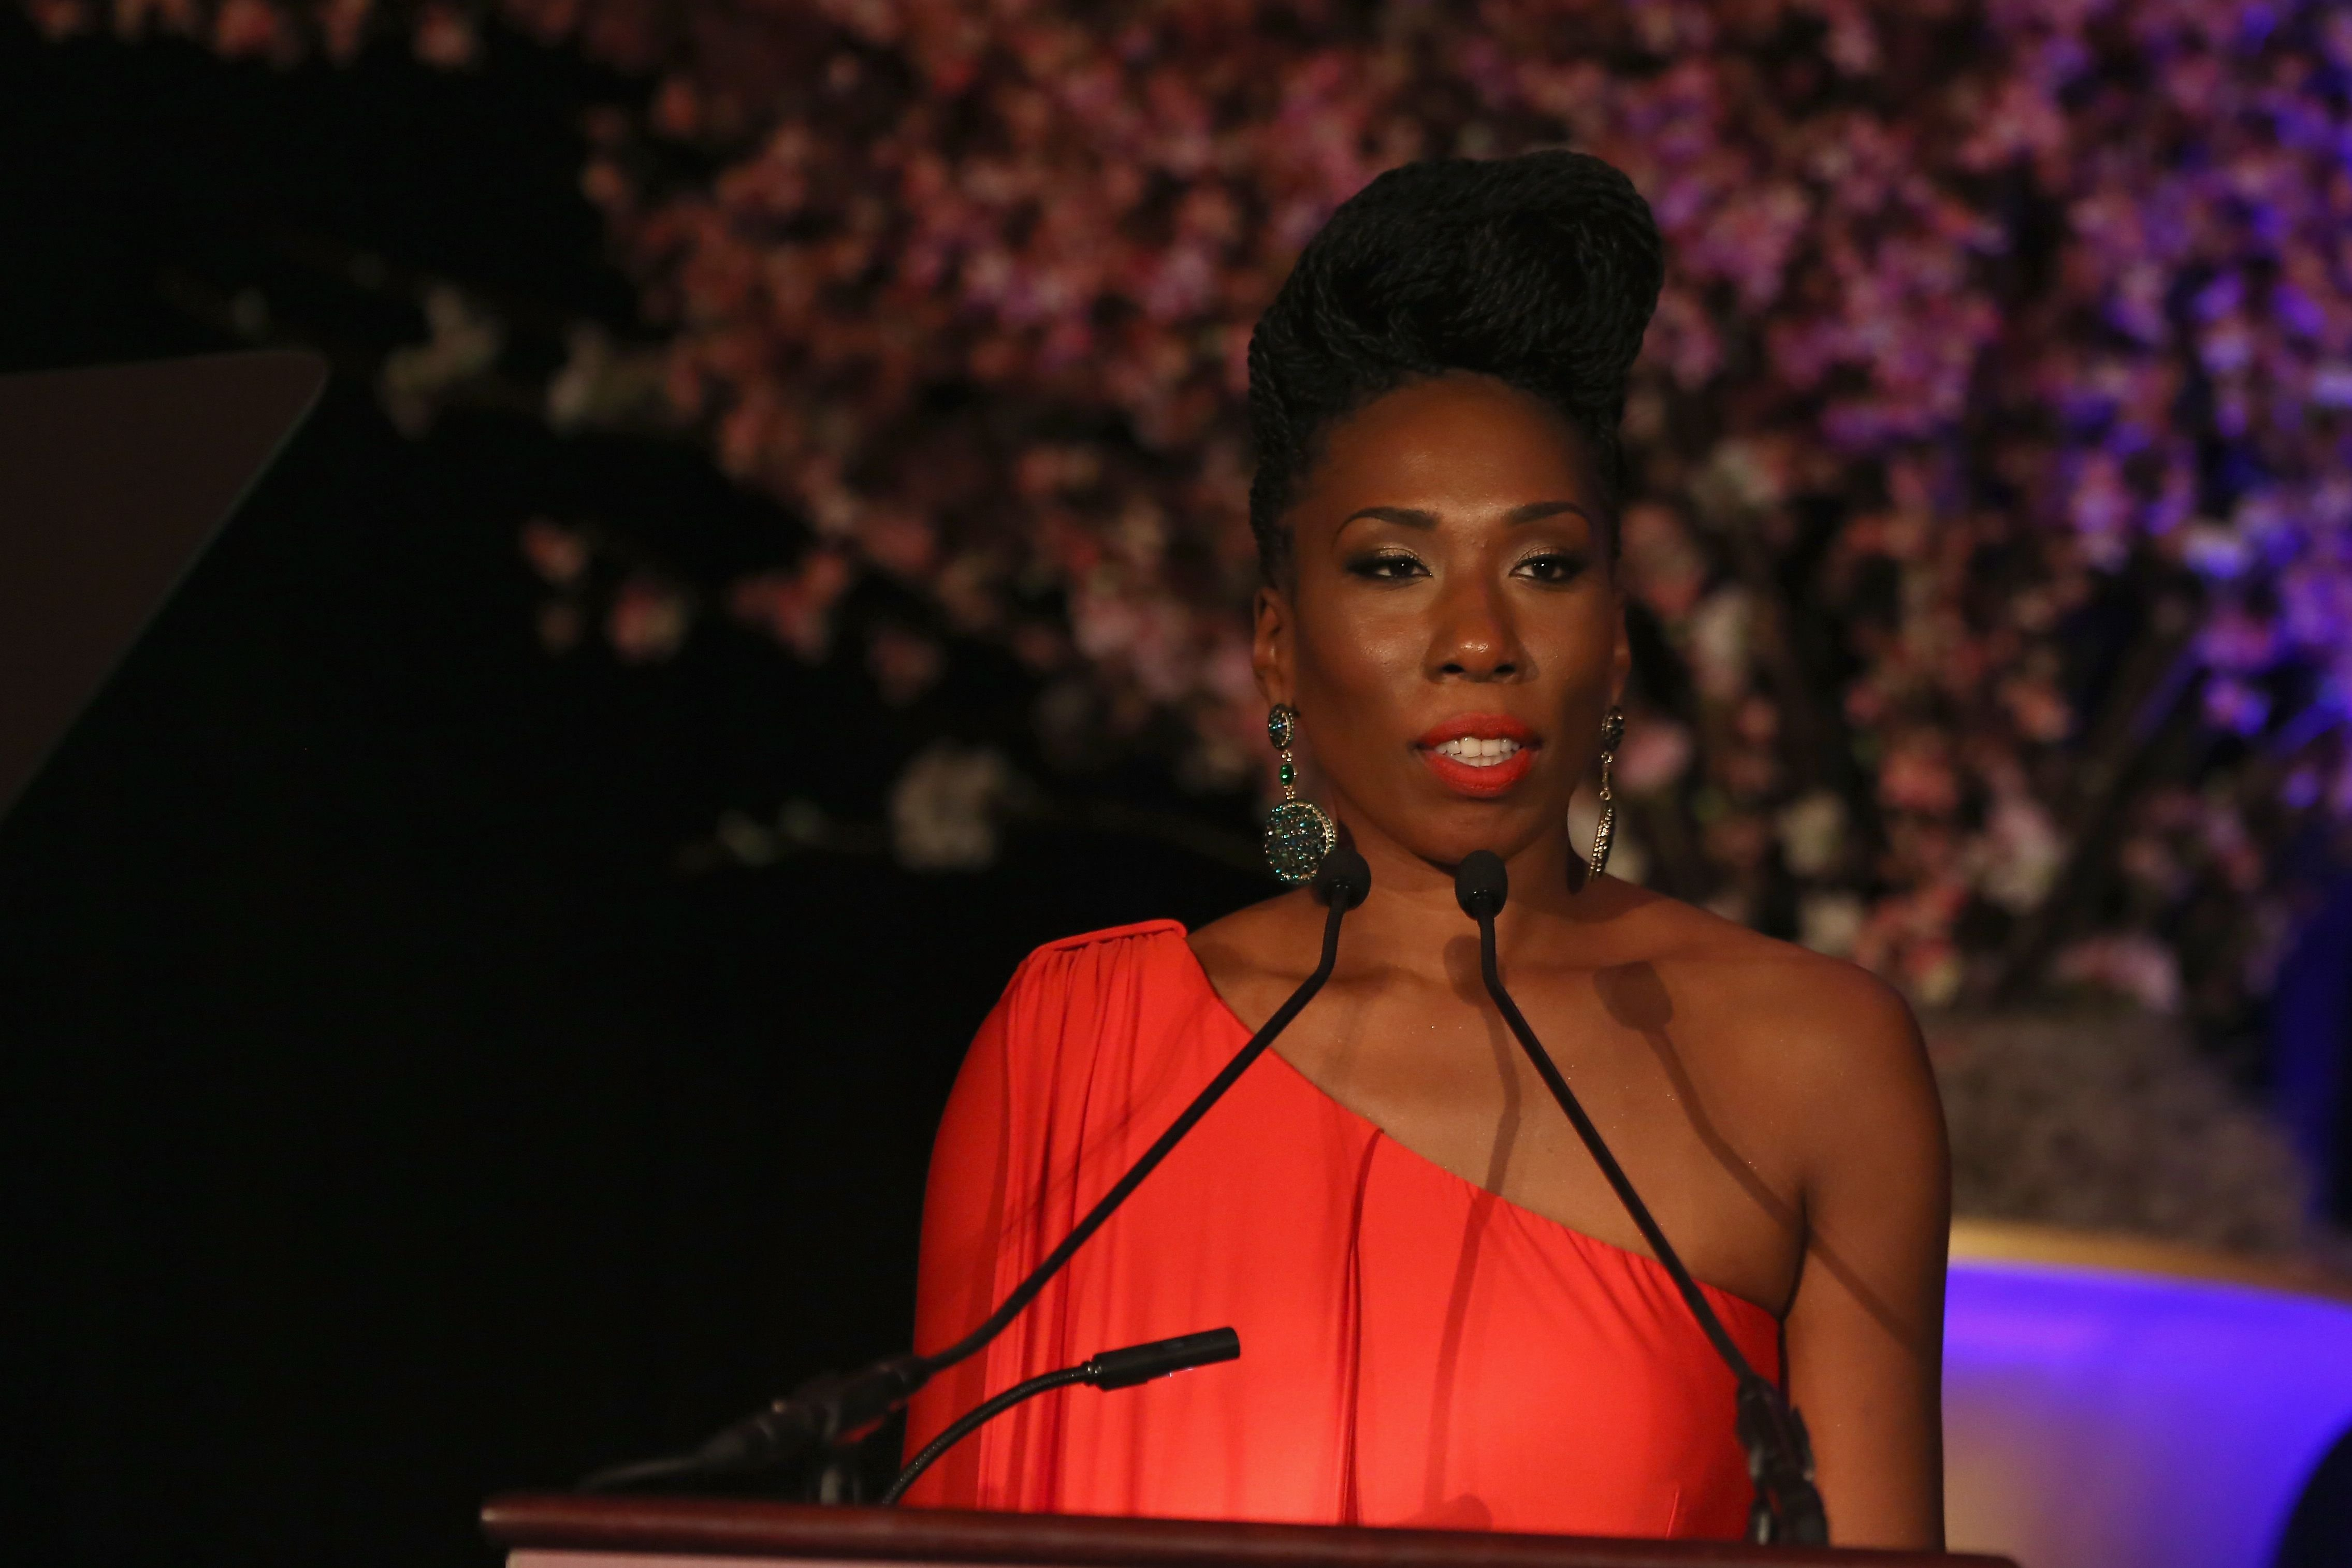 """Brandi Harvey stands behind a podium during her speech at the """"Steve & Marjorie Harvey Foundation Gala"""" on May 3, 2014, in Chicago, Illinois   Source: Getty Images"""